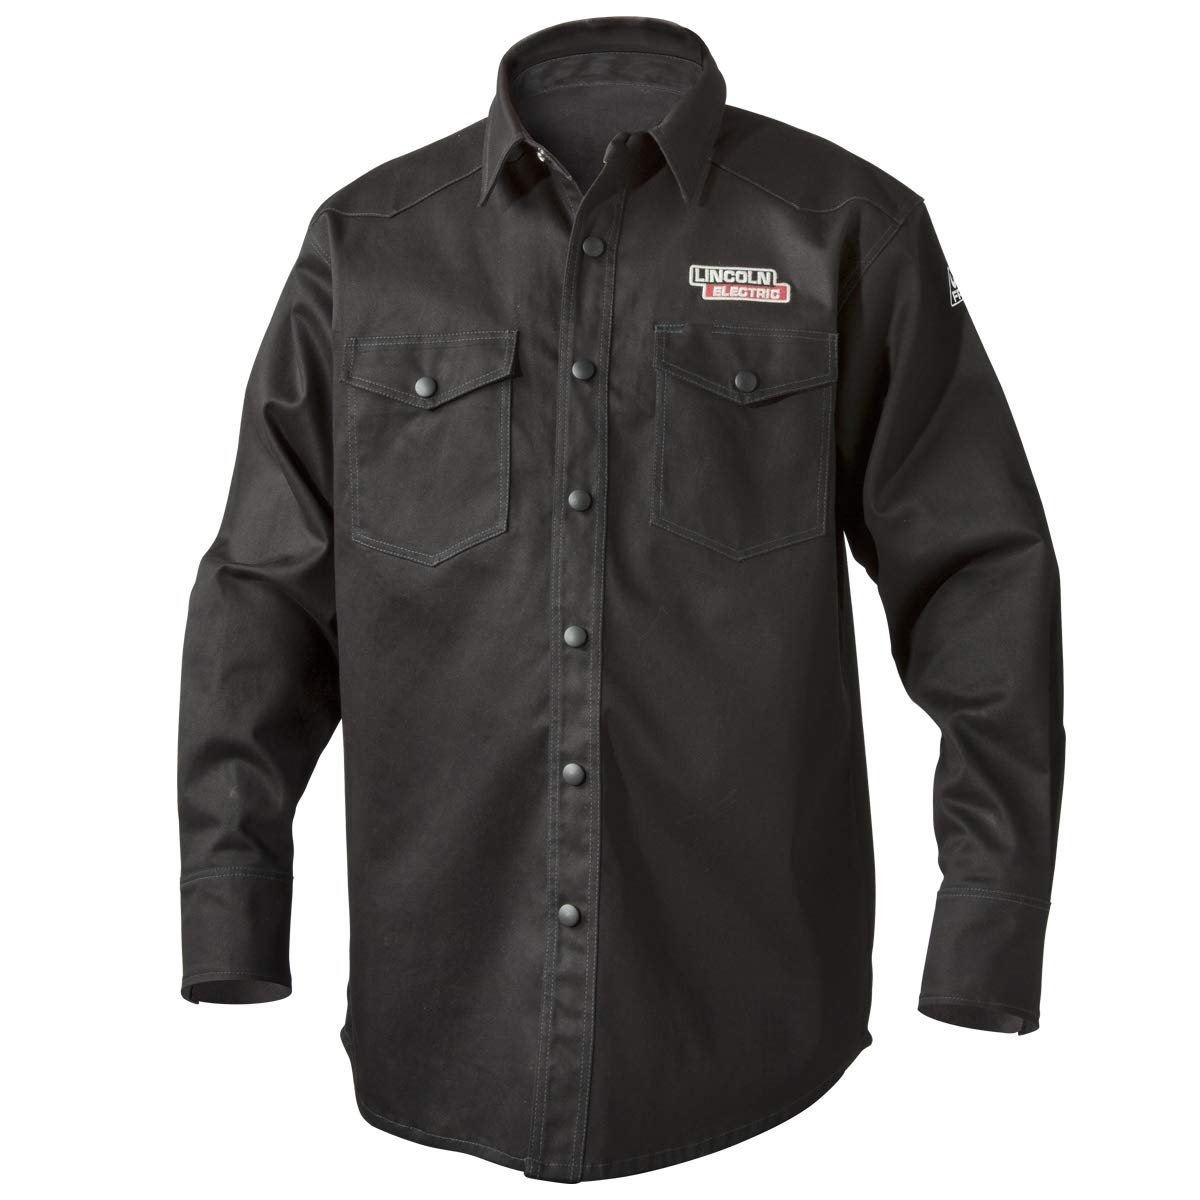 Lincoln Electric K3113-XL Welding Shirt, Premium Flame Resistant (FR) Cotton, Custom Fit, Black, XL